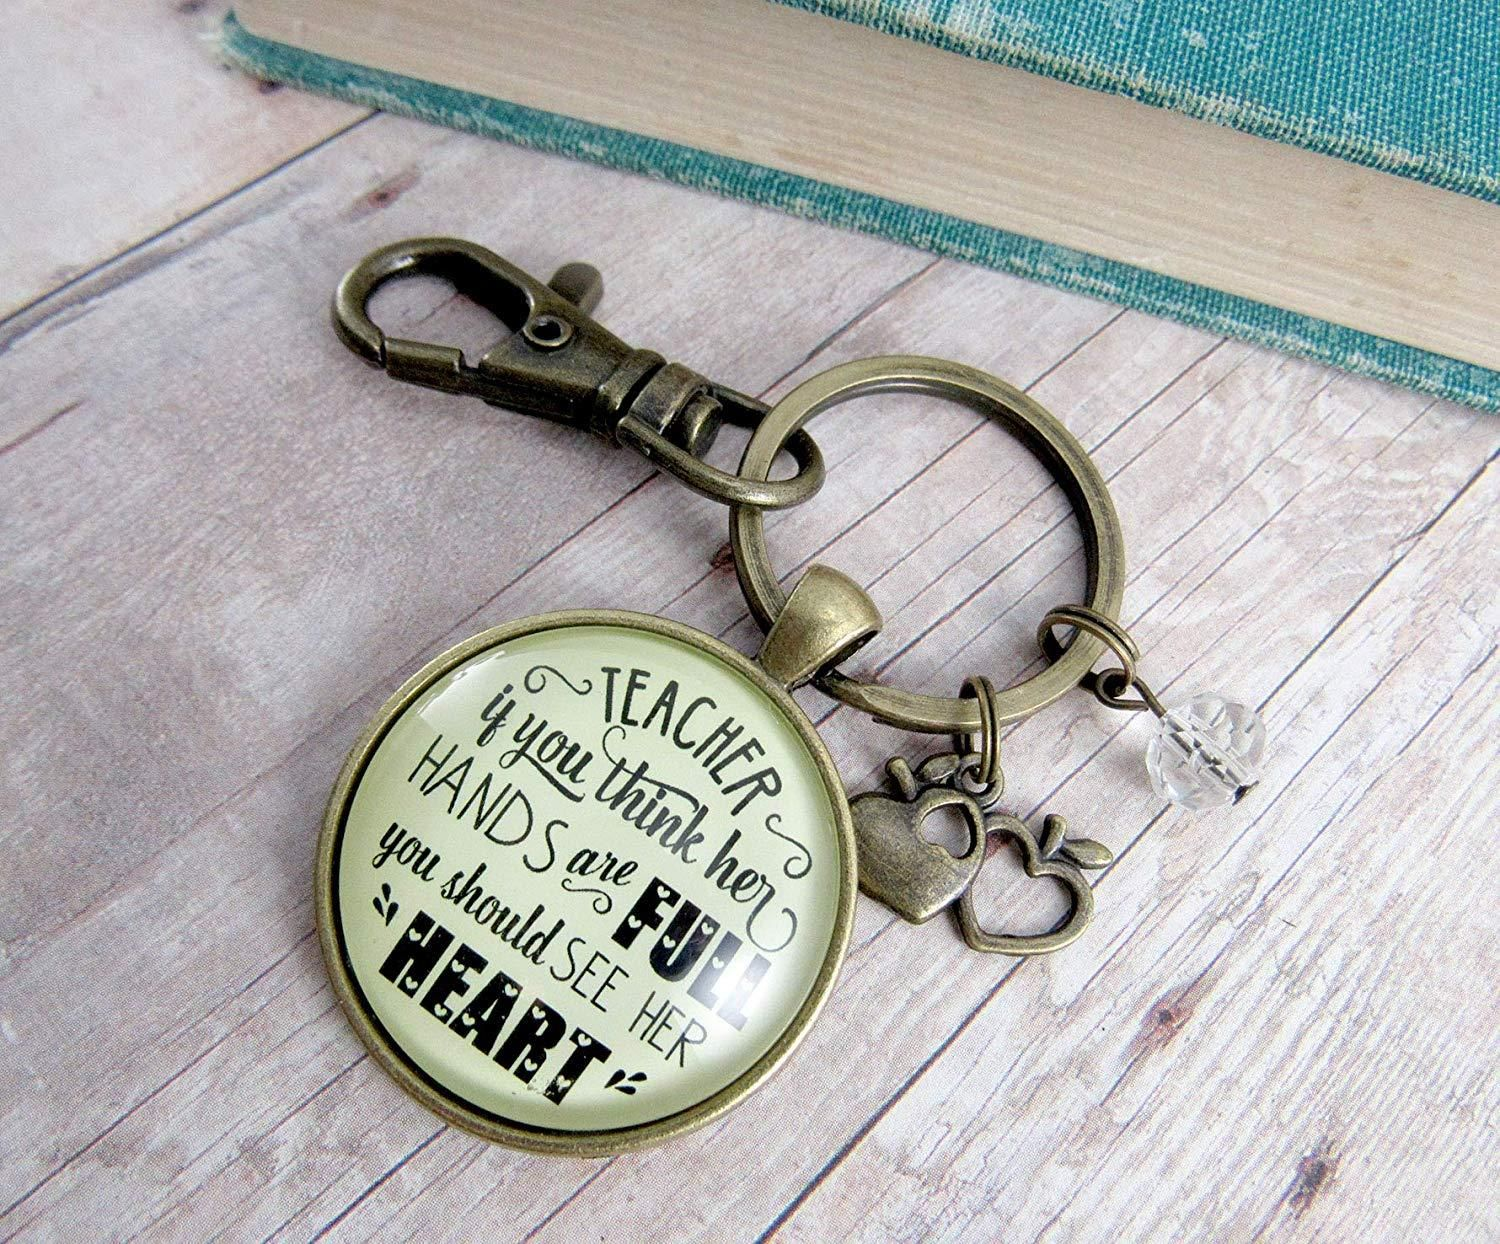 The Starfish Storyit made a difference to that one inspirational handstamped keychain